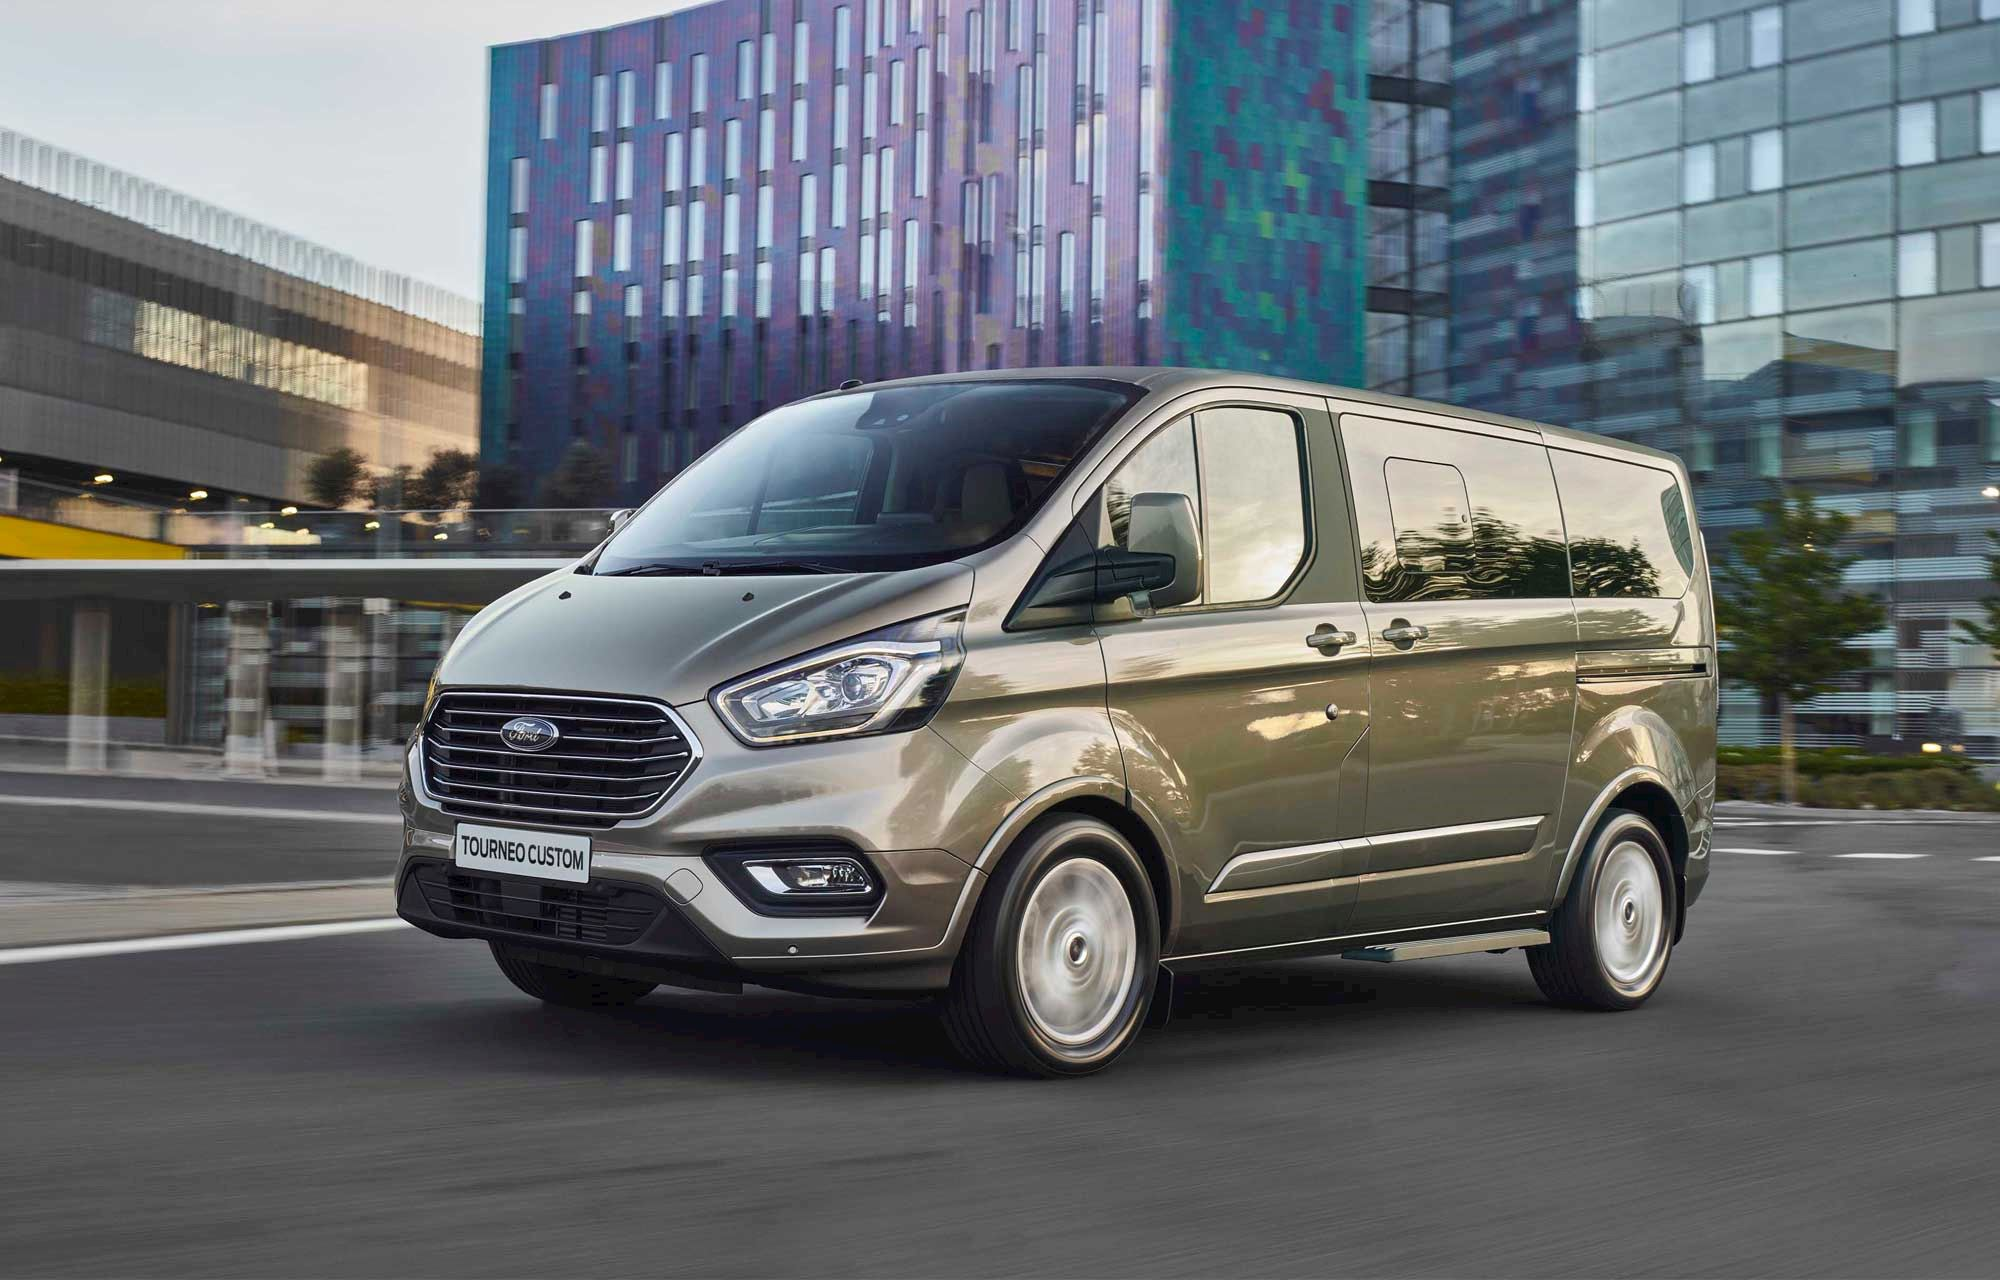 2019 Ford Tourneo Custom Exterior Gallery